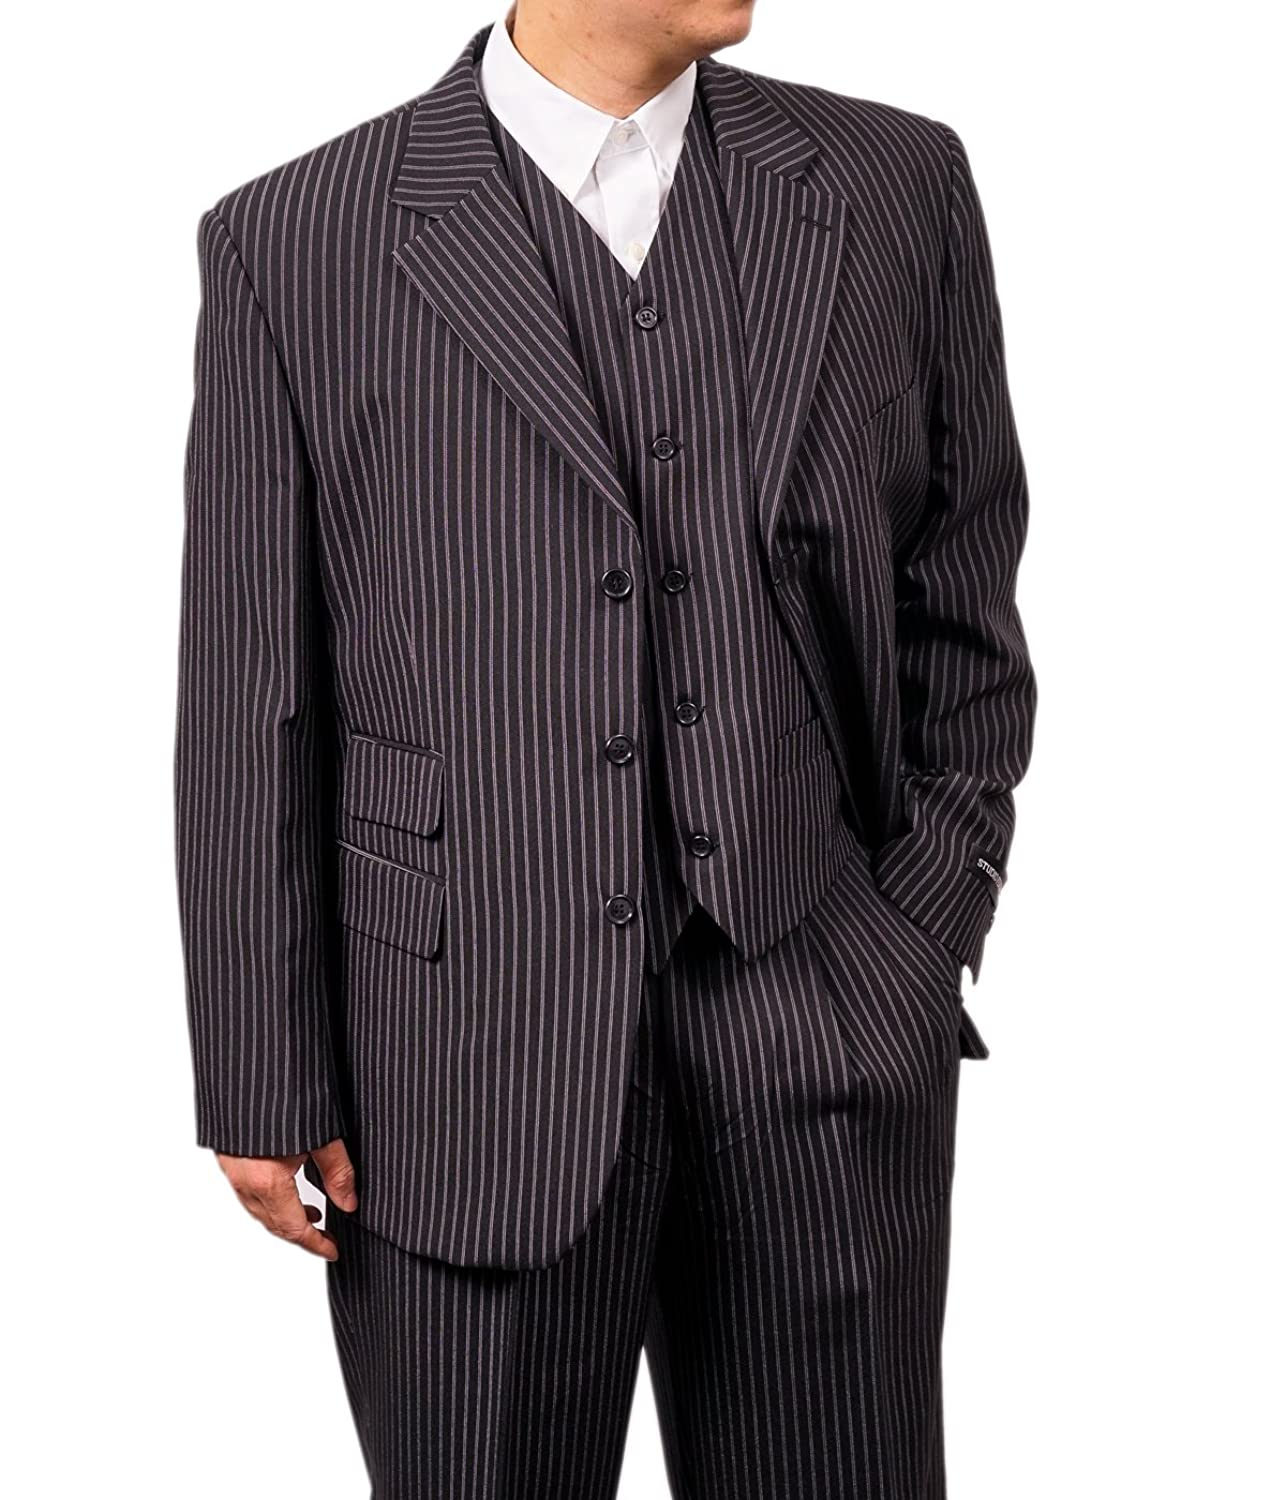 1930s Men's Suits History New Mens 3 Piece Black Gangster Pinstripe Dress Suit with Matching Vest $119.99 AT vintagedancer.com